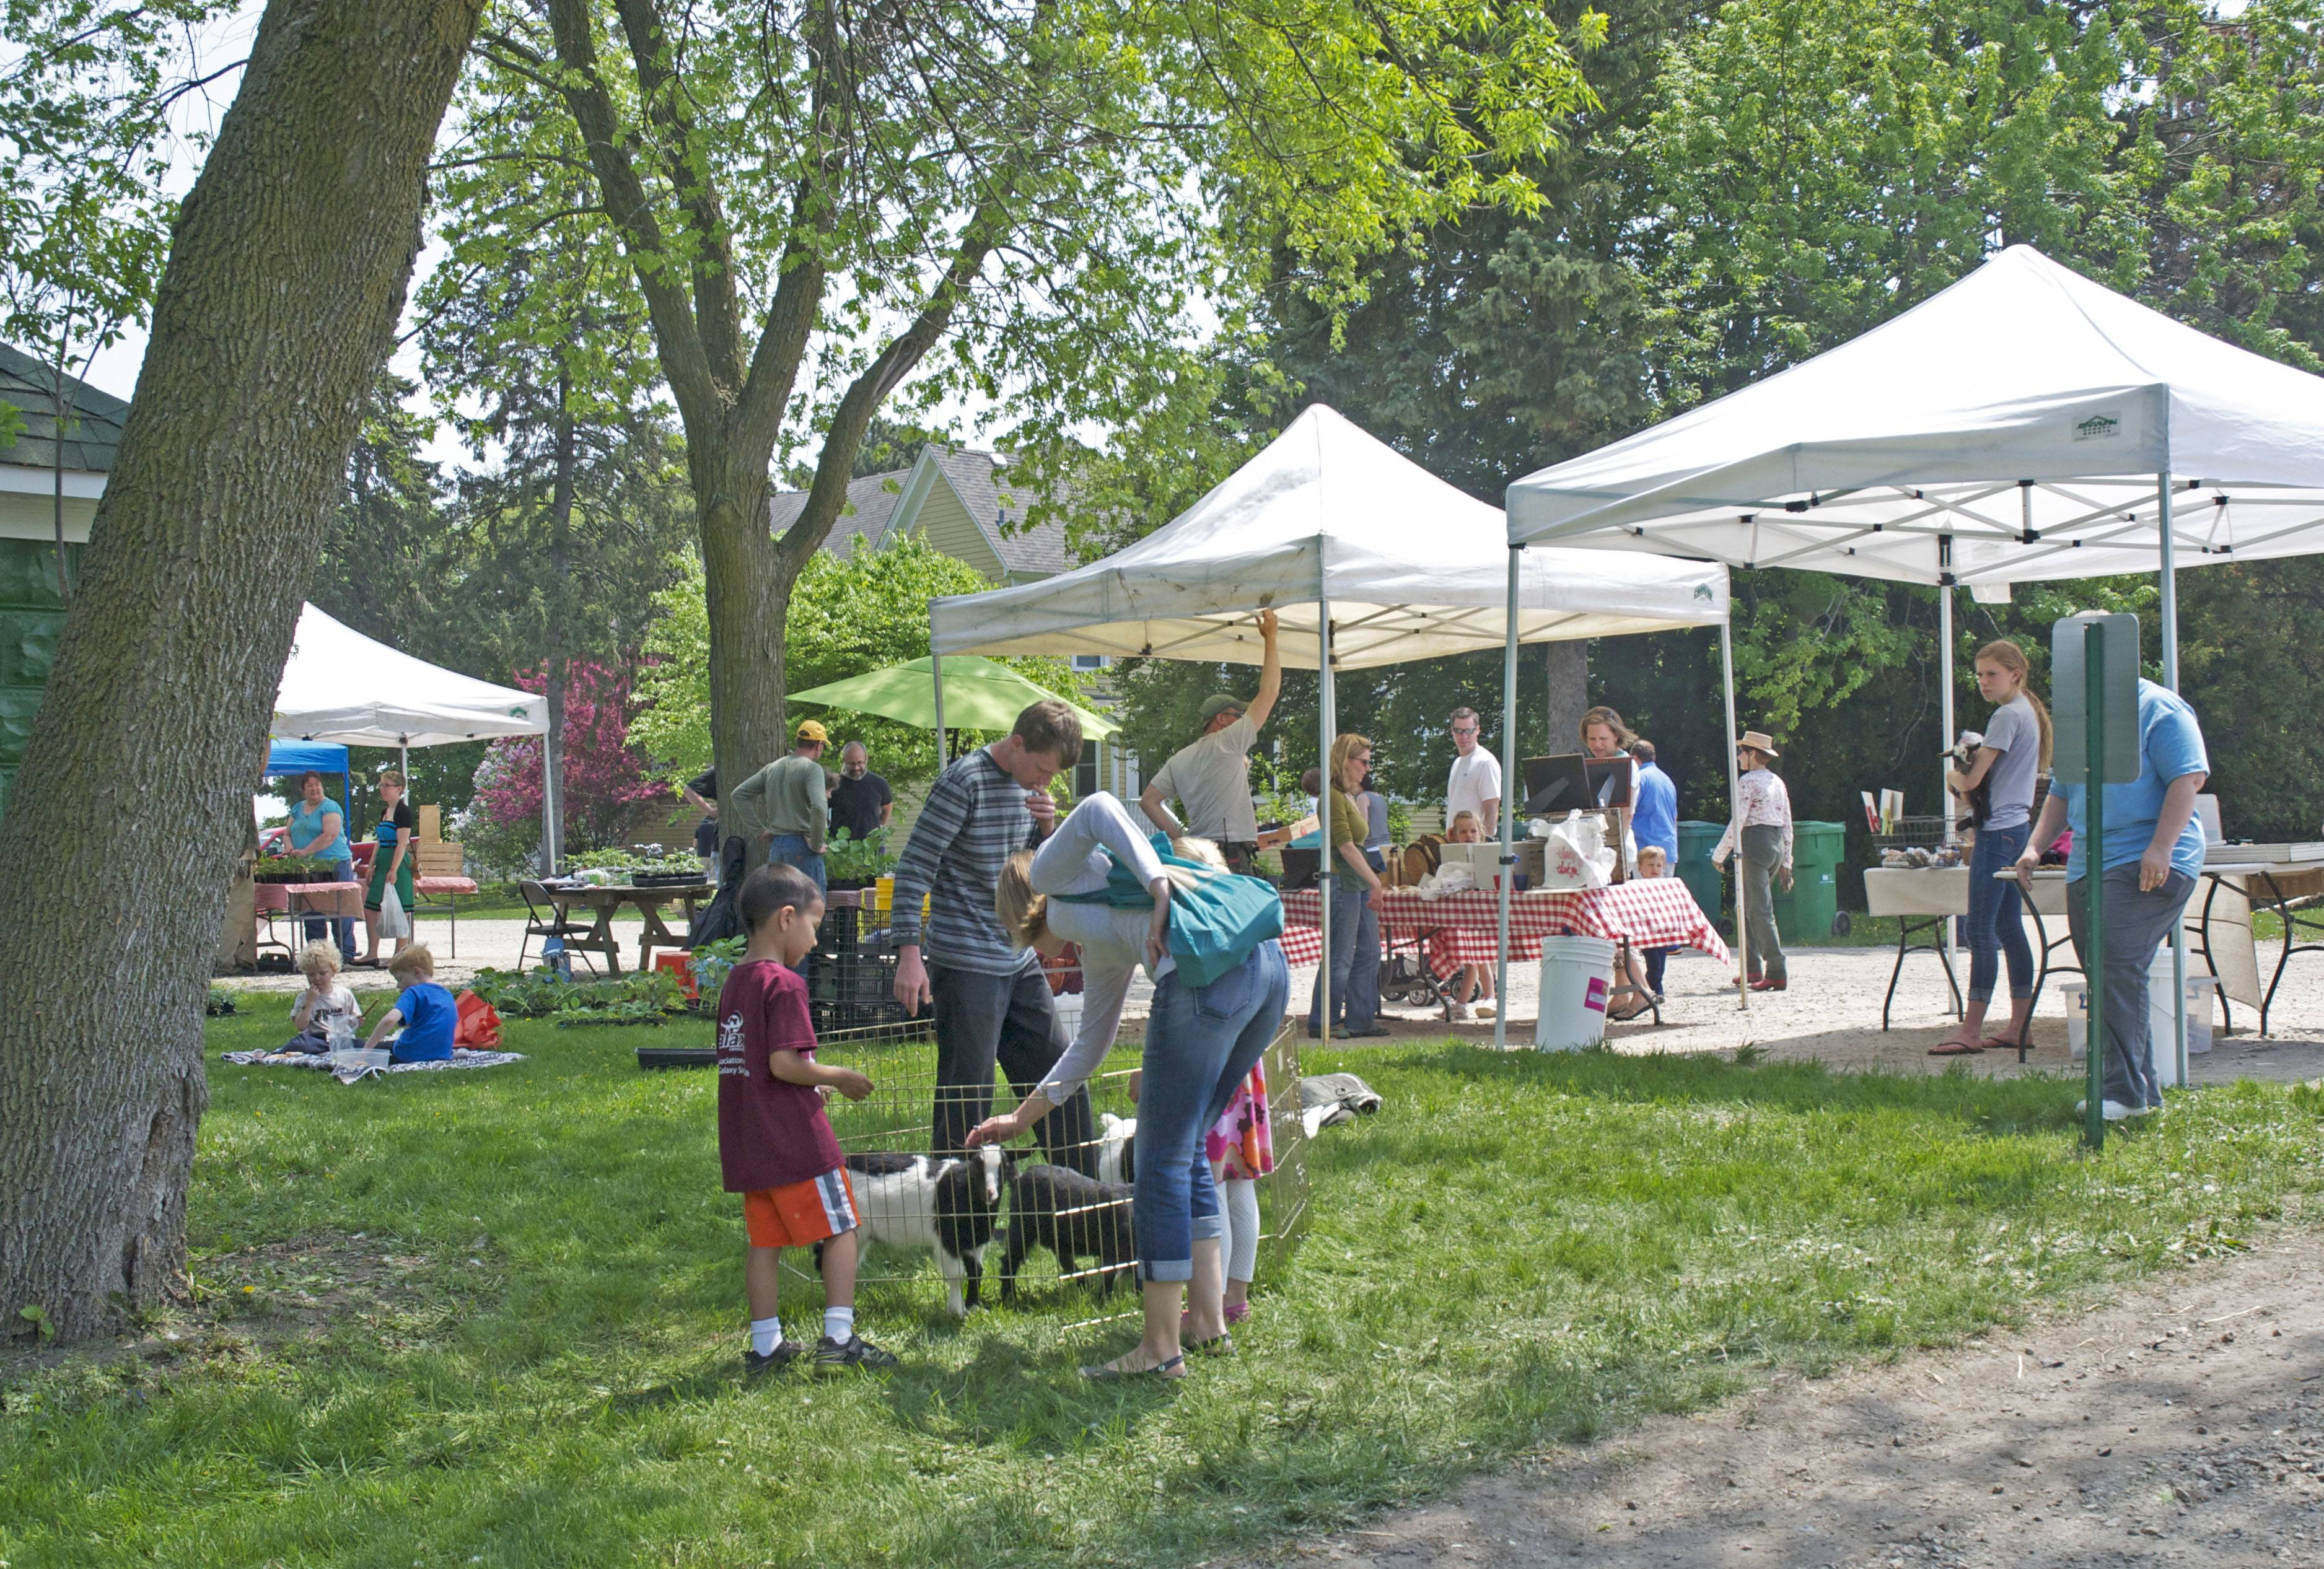 Farm visitors of all ages enjoy the May 17 Organic Plant Sale & Farm Open House at the Prairie Crossing Farm in Grayslake.MT Natarajan